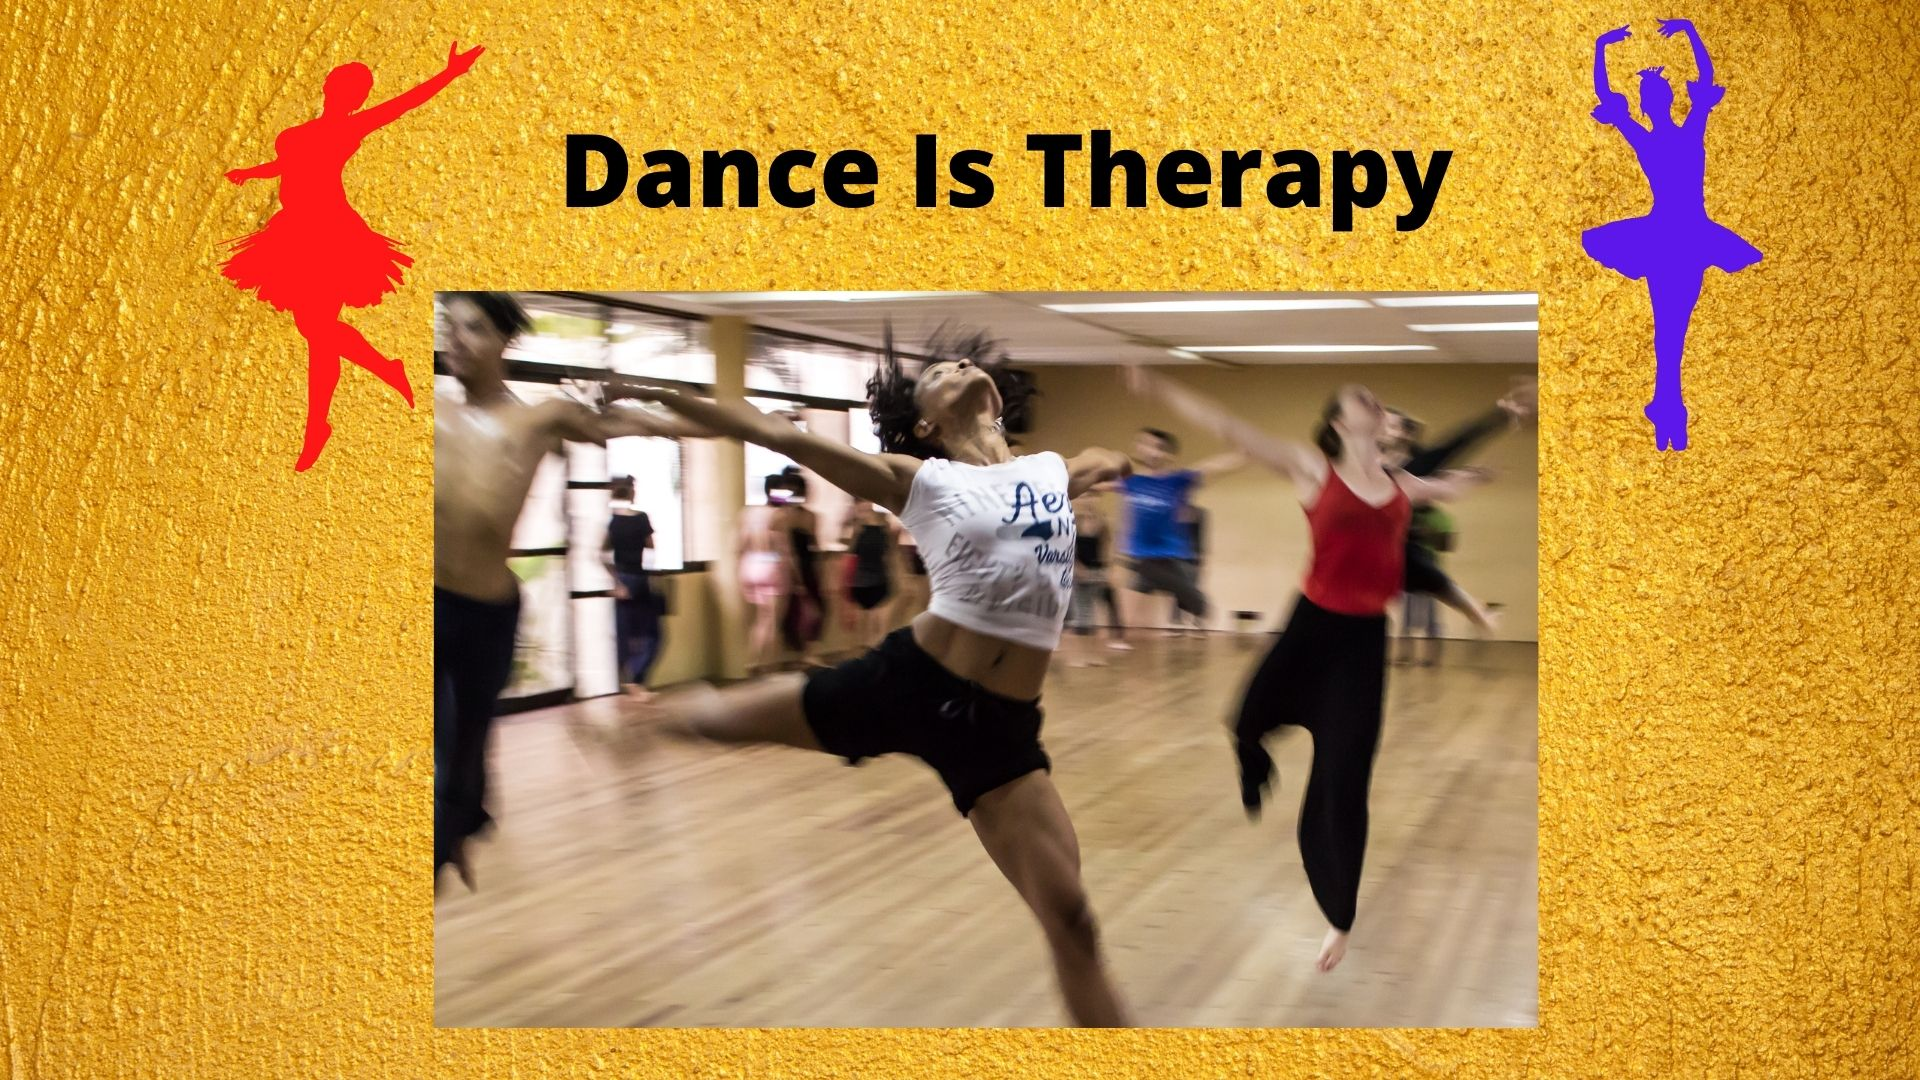 'Dance is therapy, is it really therapeutic?'